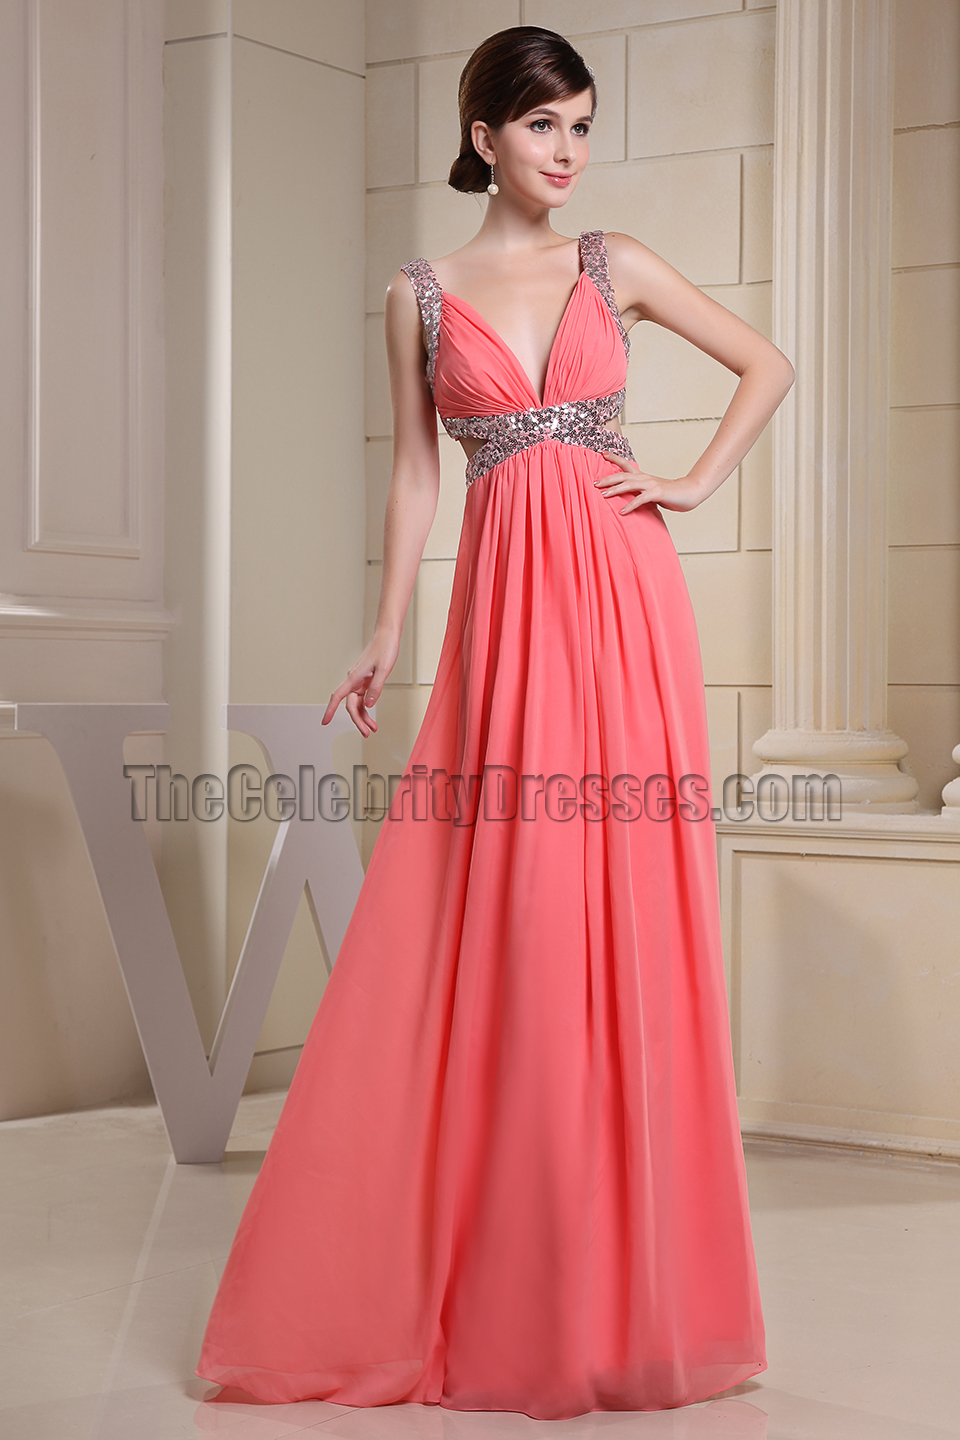 Watermelon Cut Out Silver Sequined Prom Dress Evening Gown ...